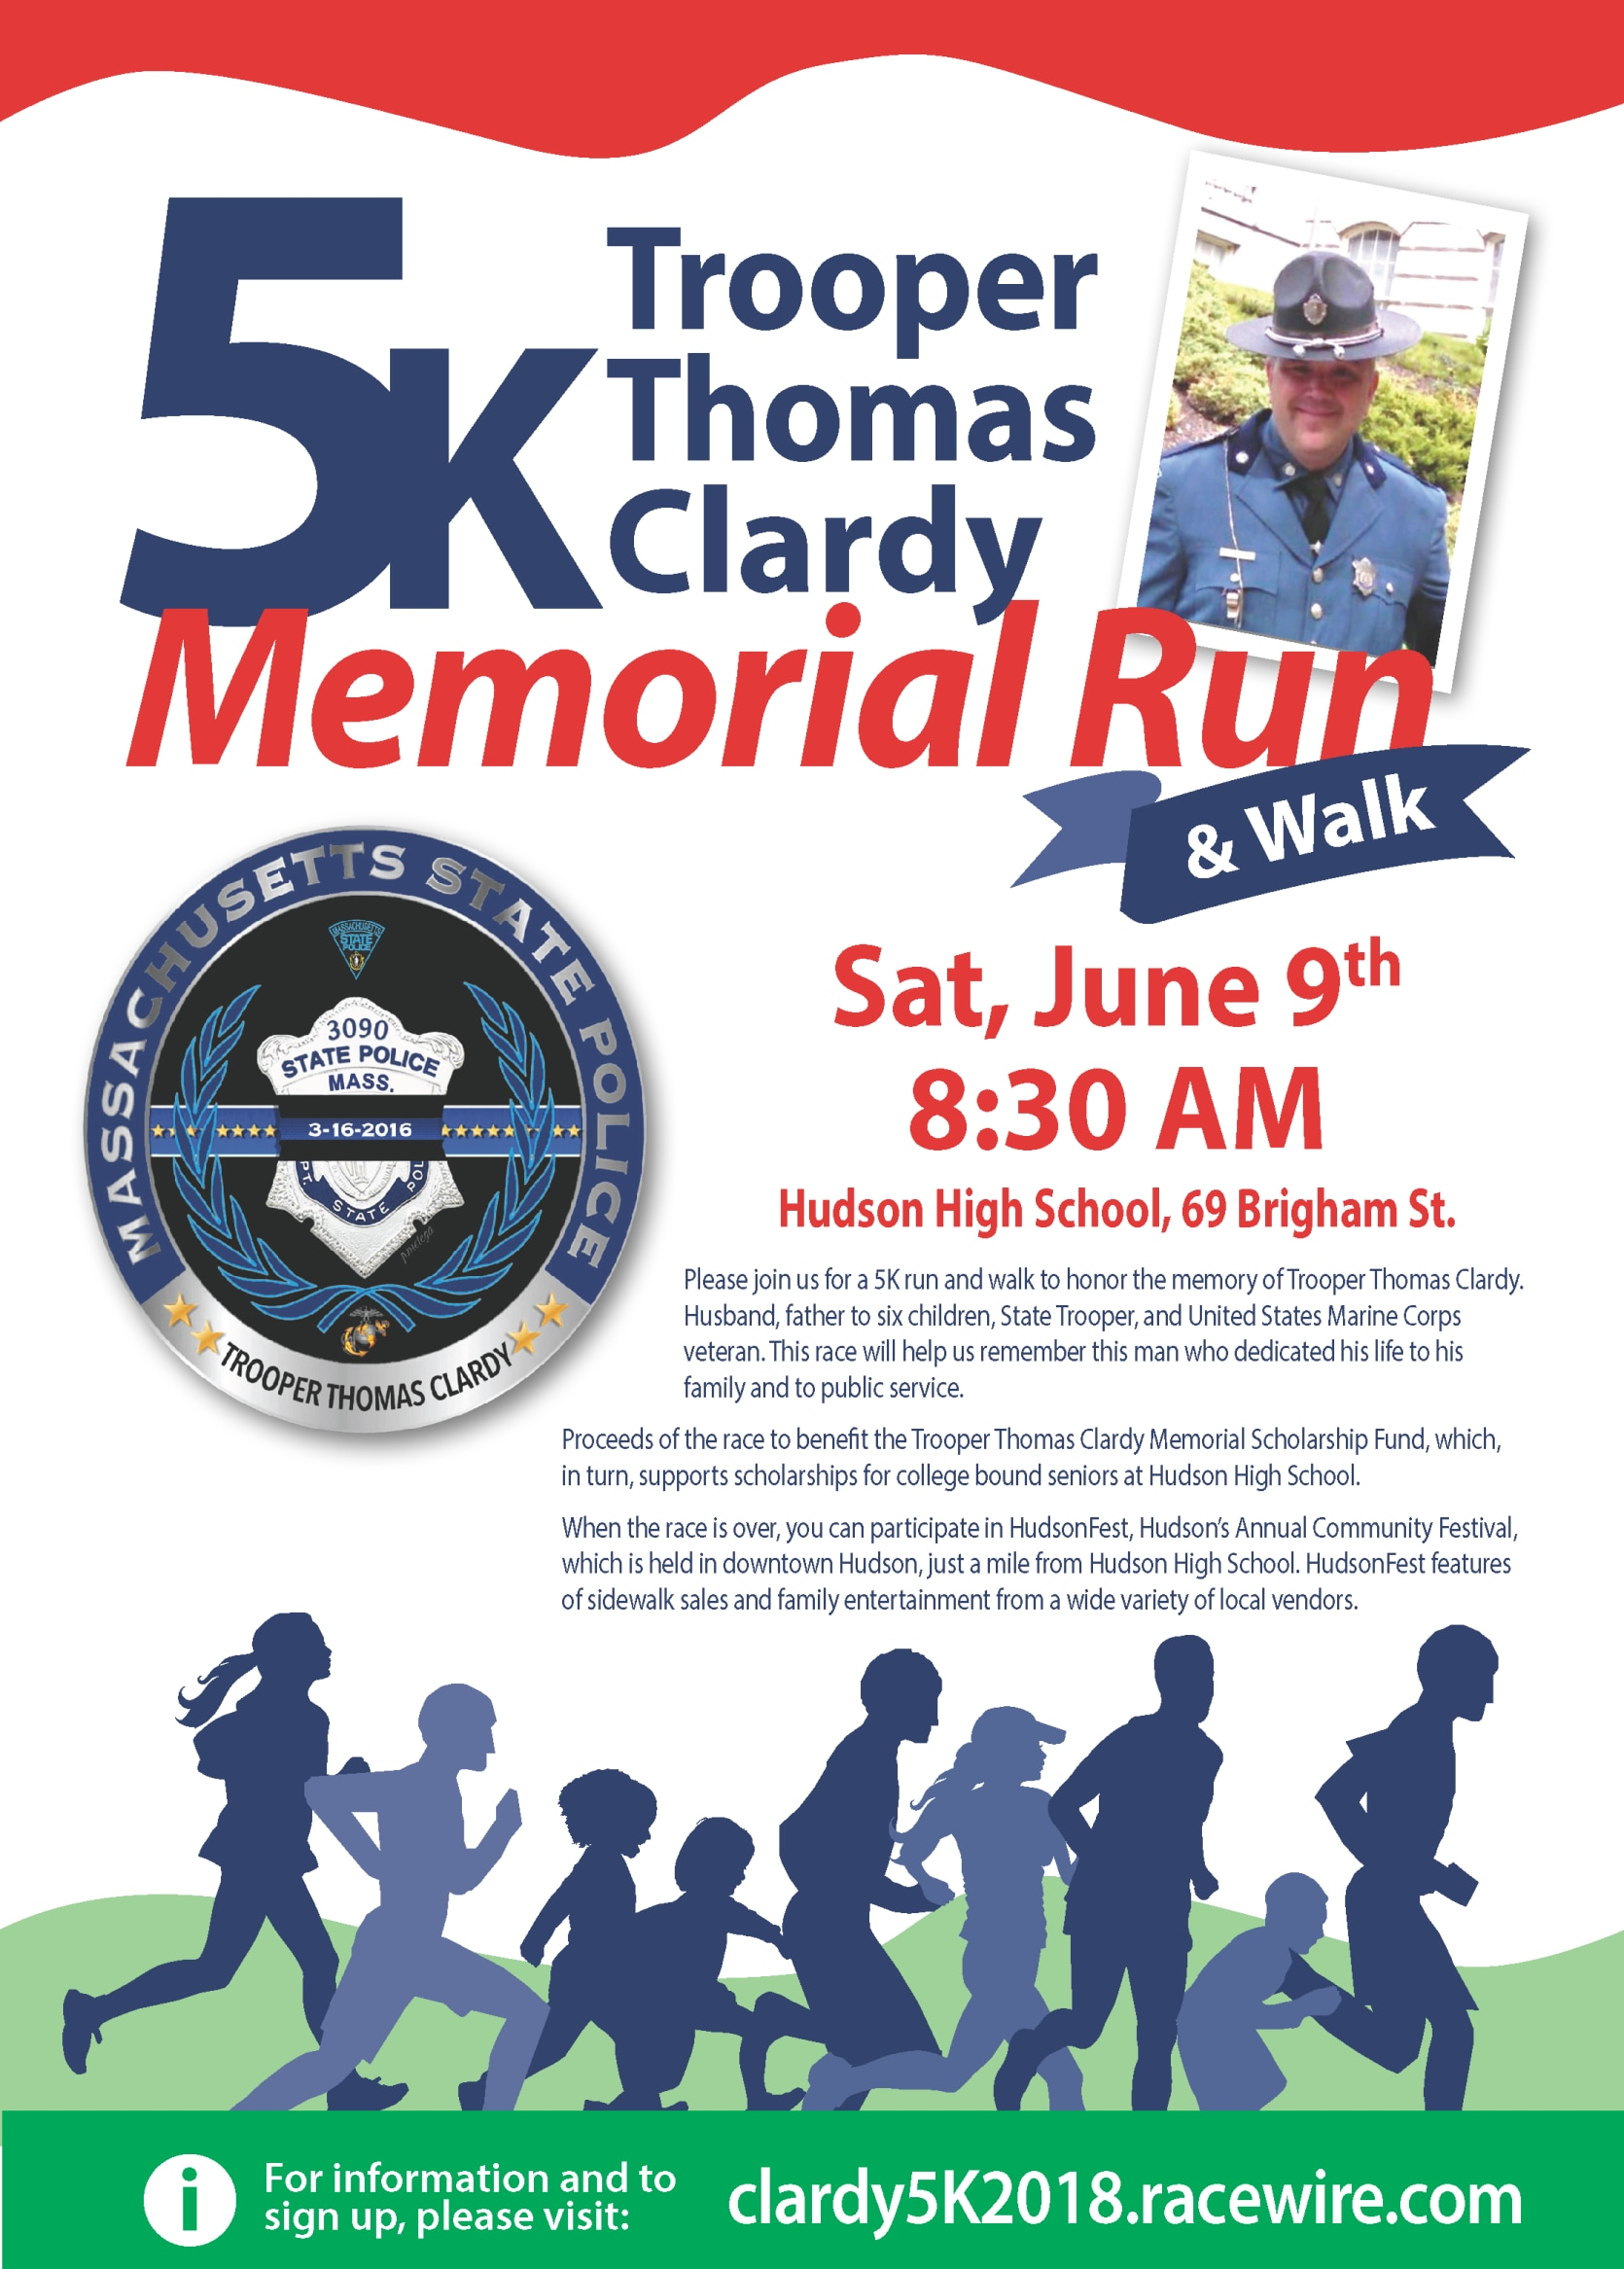 Please join us for a 5K run and walk to honor the memory of Trooper Thomas Clardy. Husband, father to six children, State Trooper, and United States Marine Corps veteran.